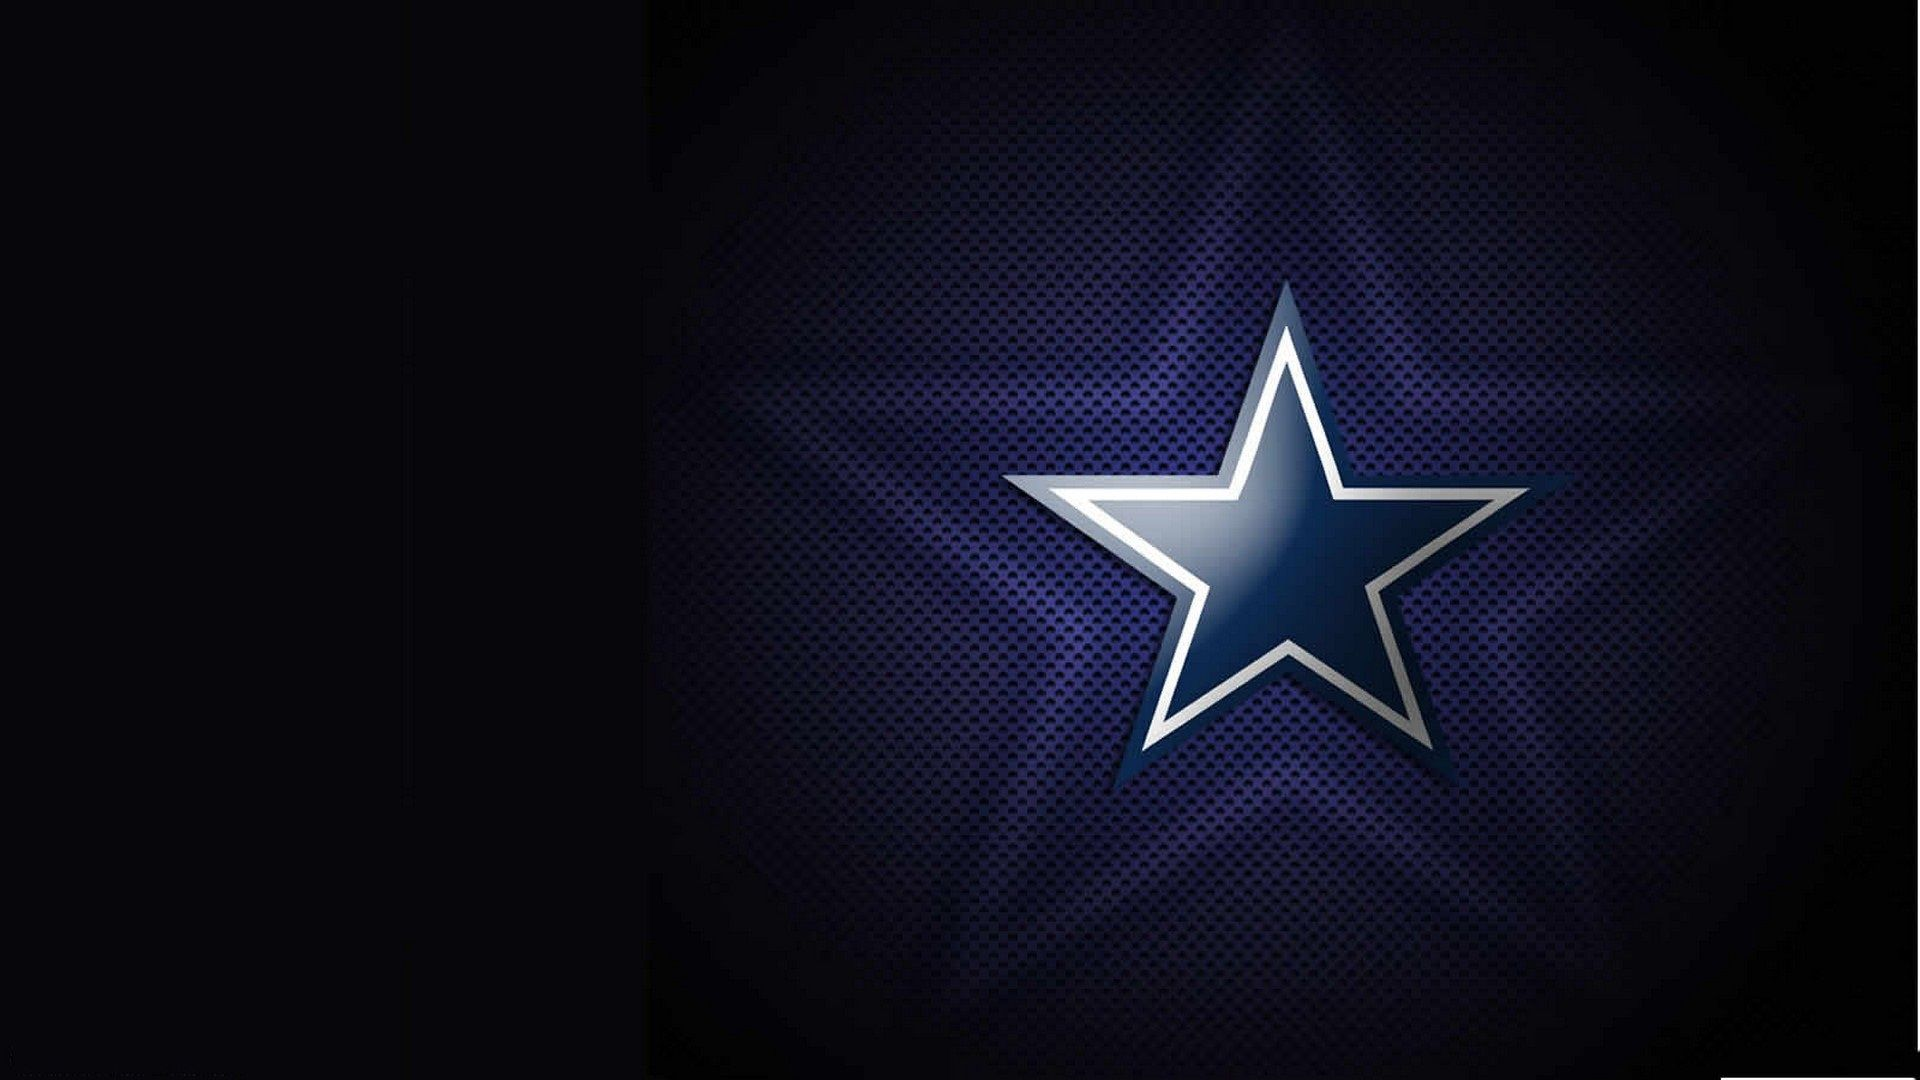 Dallas Cowboys Wallpapers - Top Free